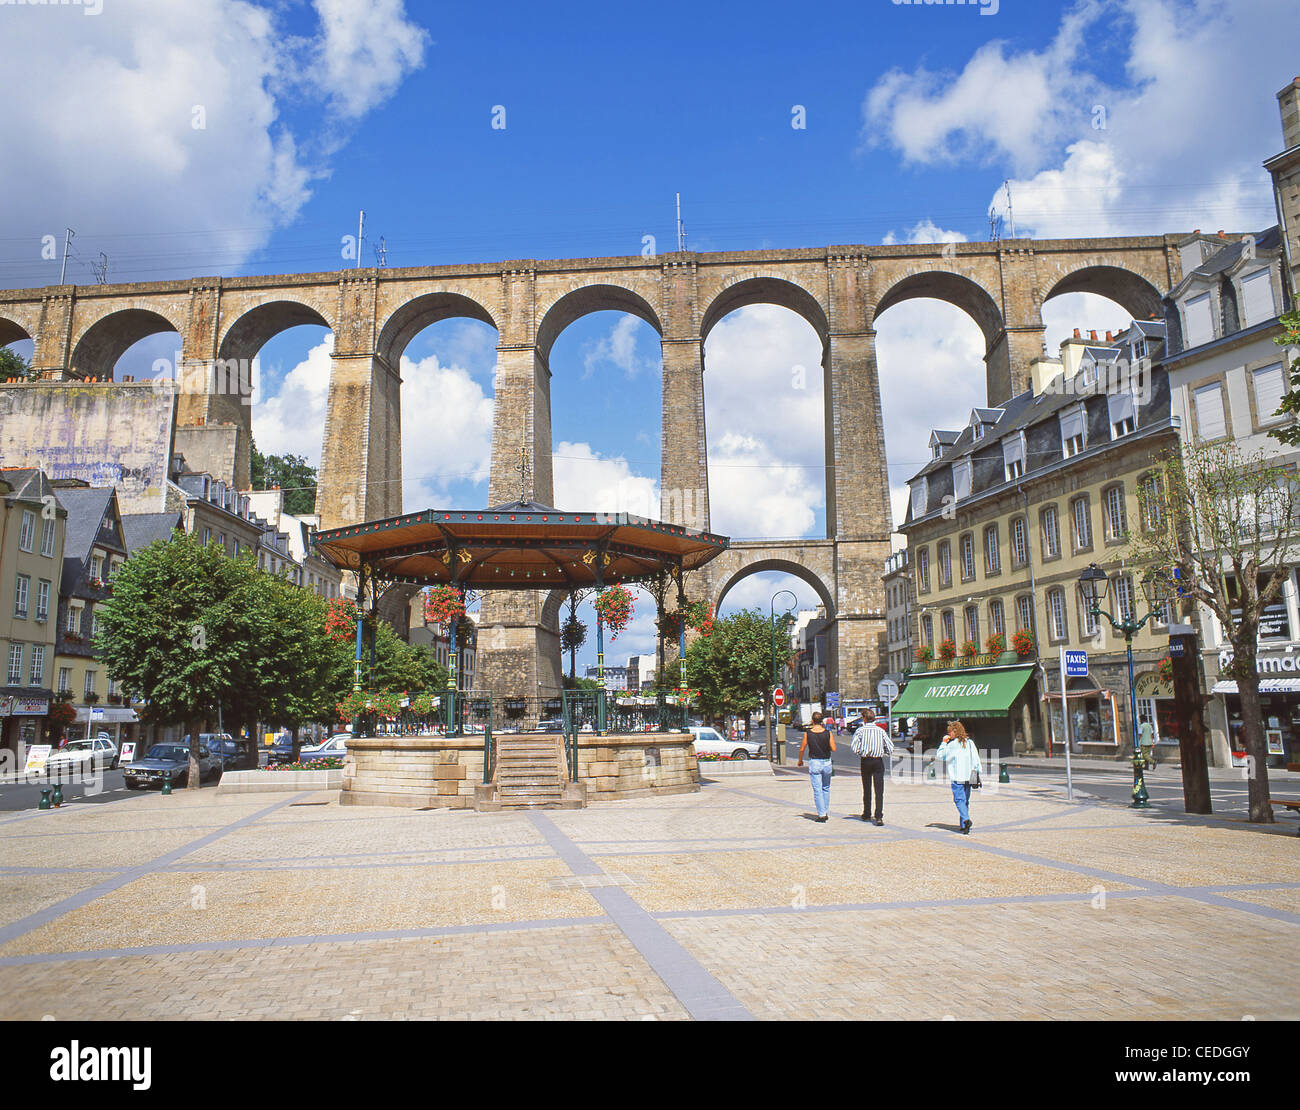 Morlaix Viaduct, Place Otages, Morlaix, Finistère, Brittany, France - Stock Image